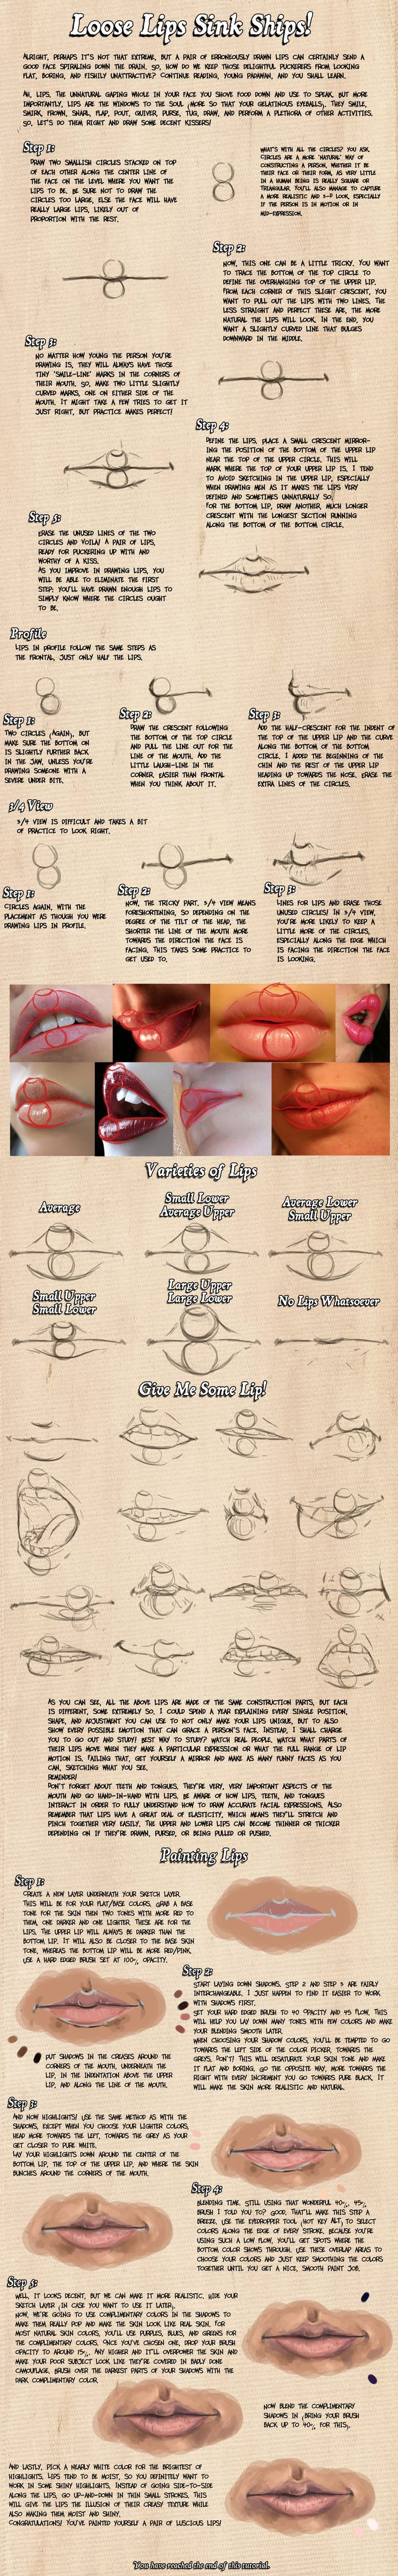 how to draw lips | #drawing #tutorial #training #creative #paper #clolour #pen #design #illustration #basics #badass #muscles < repinned by an #advertising agency from #Hamburg / #Germany - www.BlickeDeeler.de